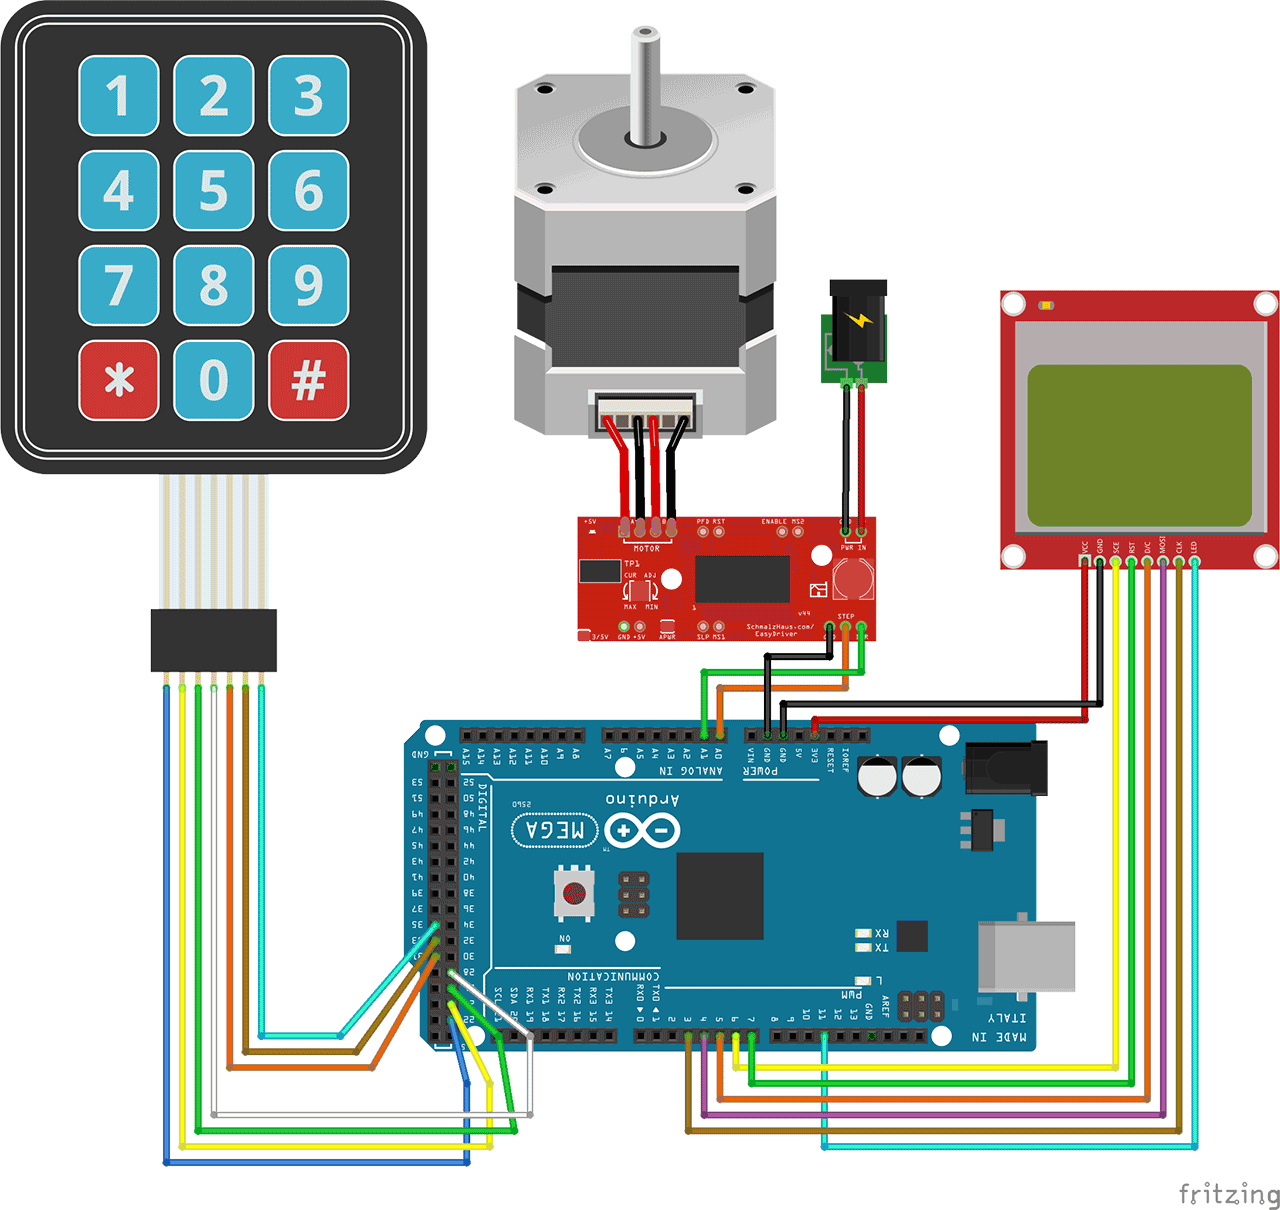 small resolution of let s control the movement of a stepper motor by entering a value in millimeters using an arduino a keypad and display the position on a nokia lcd